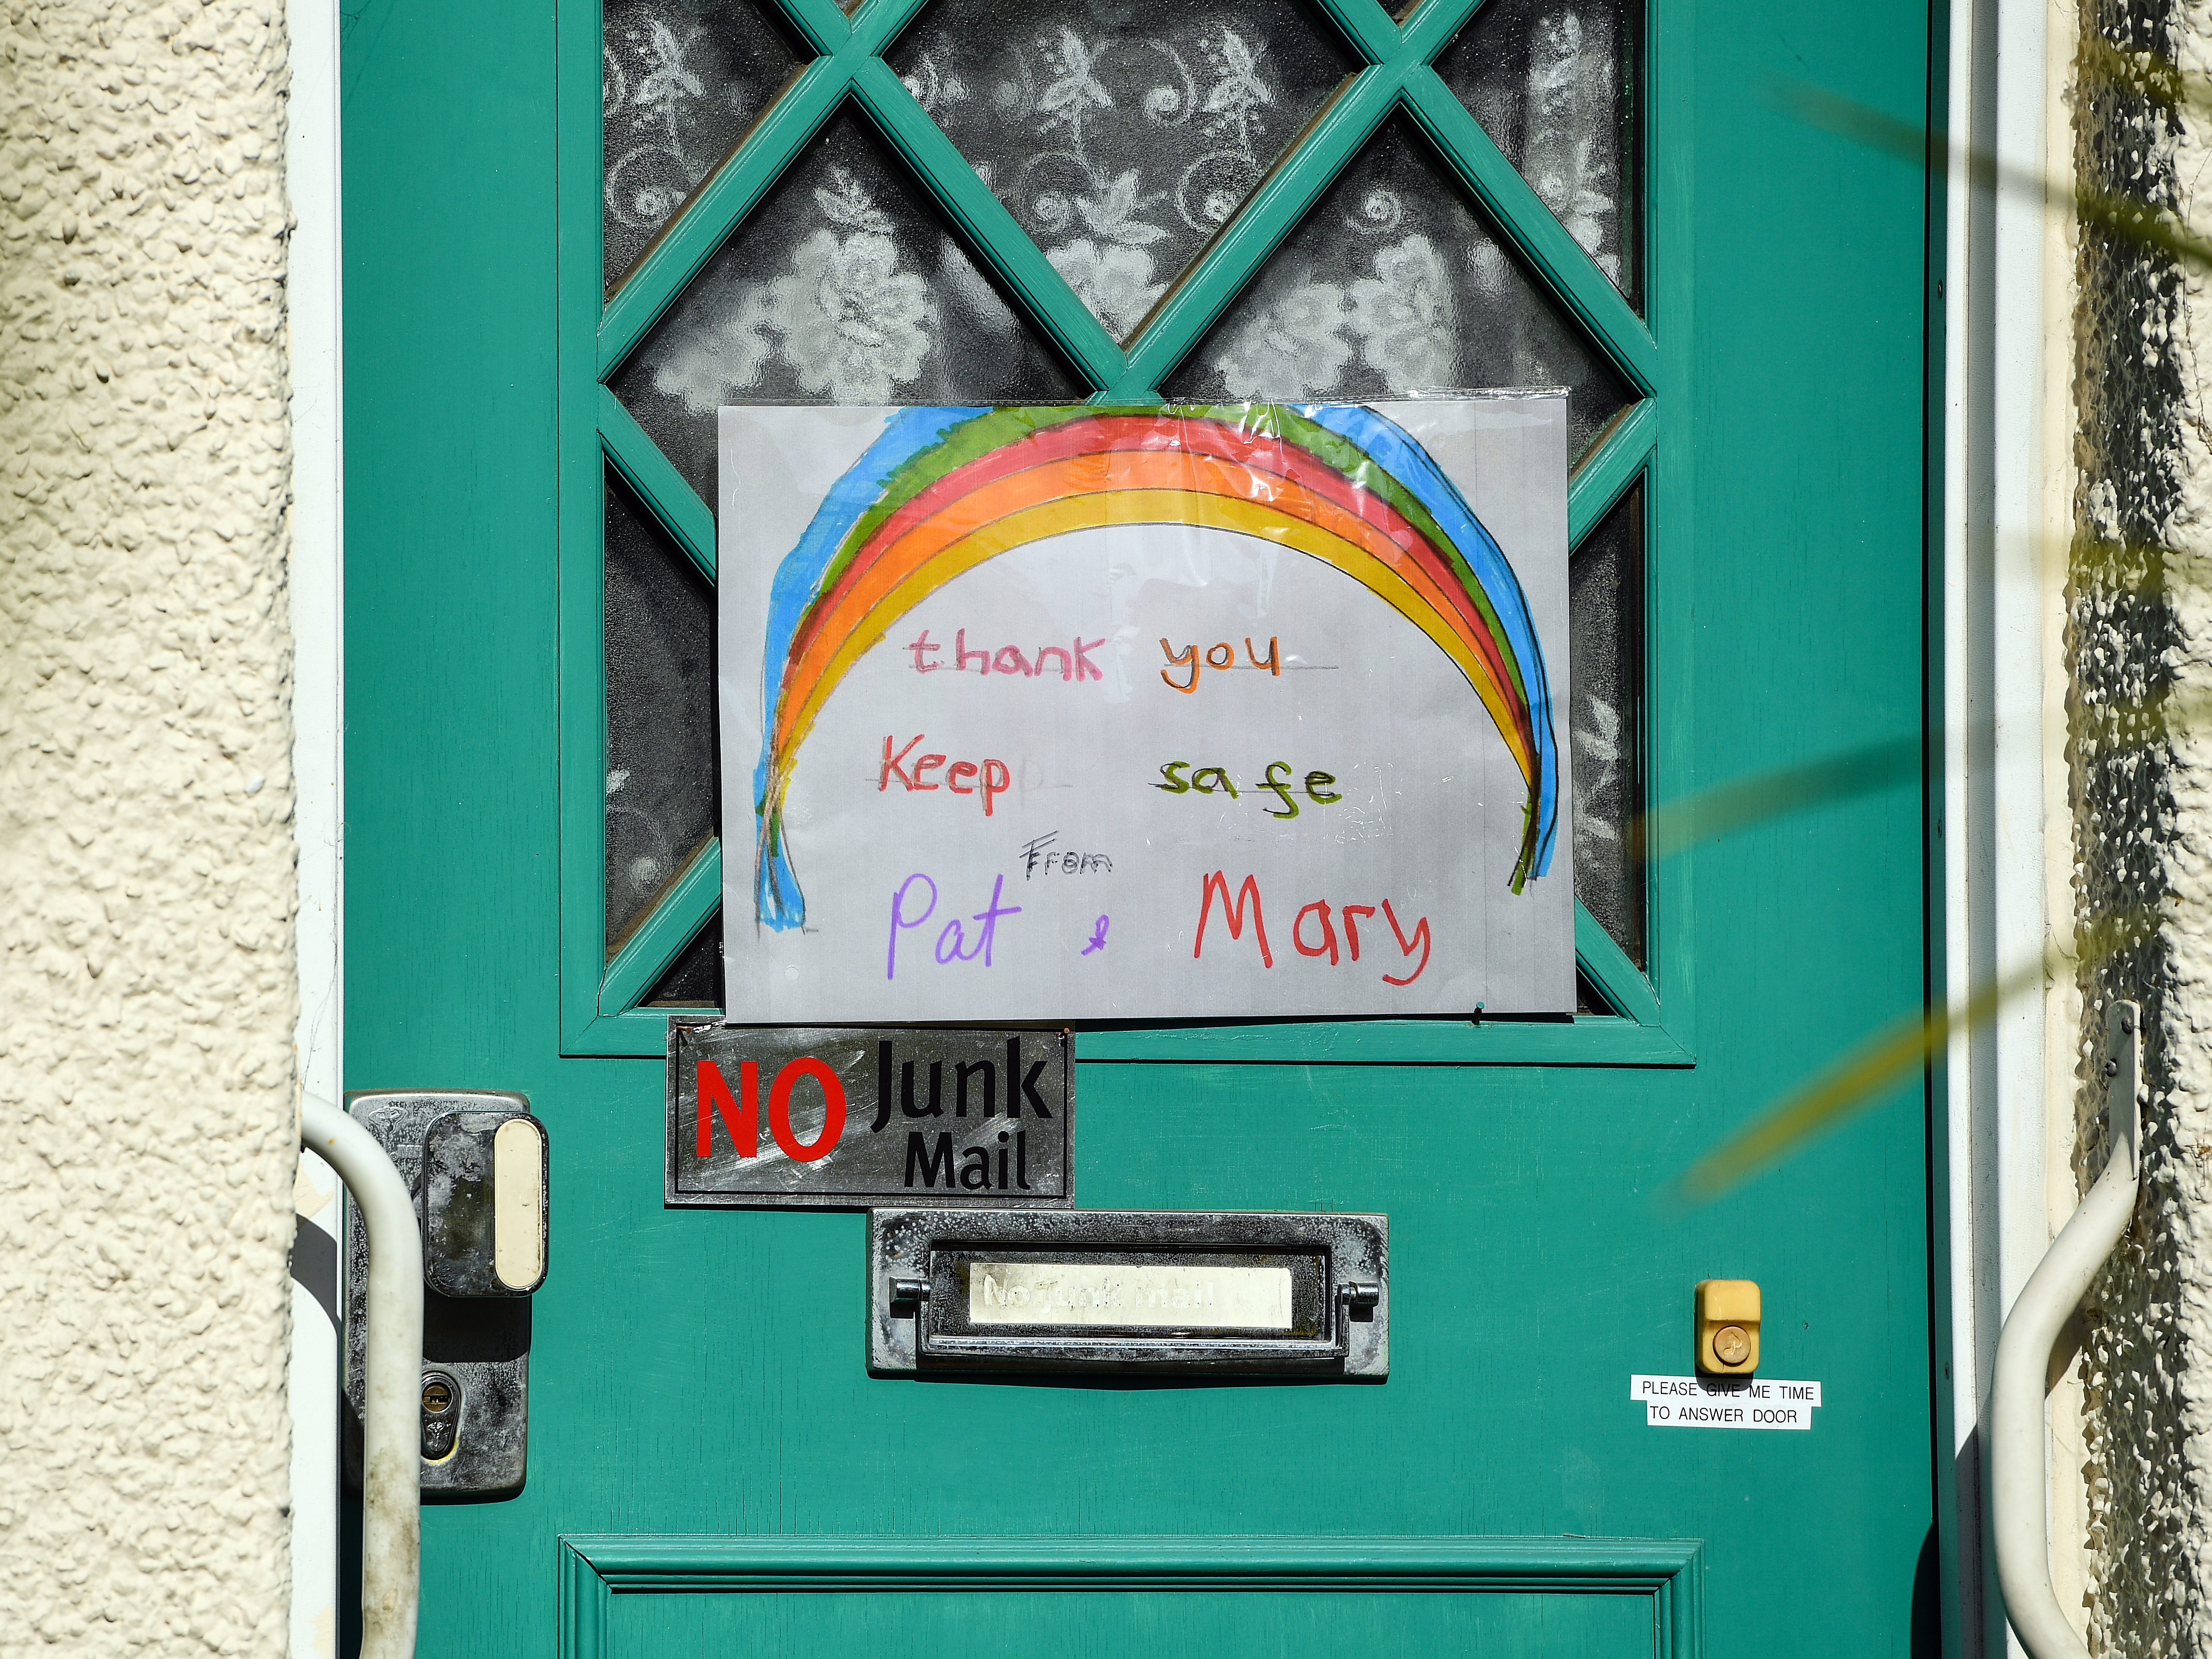 Hand painted pictures of colourful rainbows are displayed on the door of a home in South London as the UK continues in lockdown to help curb the spread of the coronavirus.